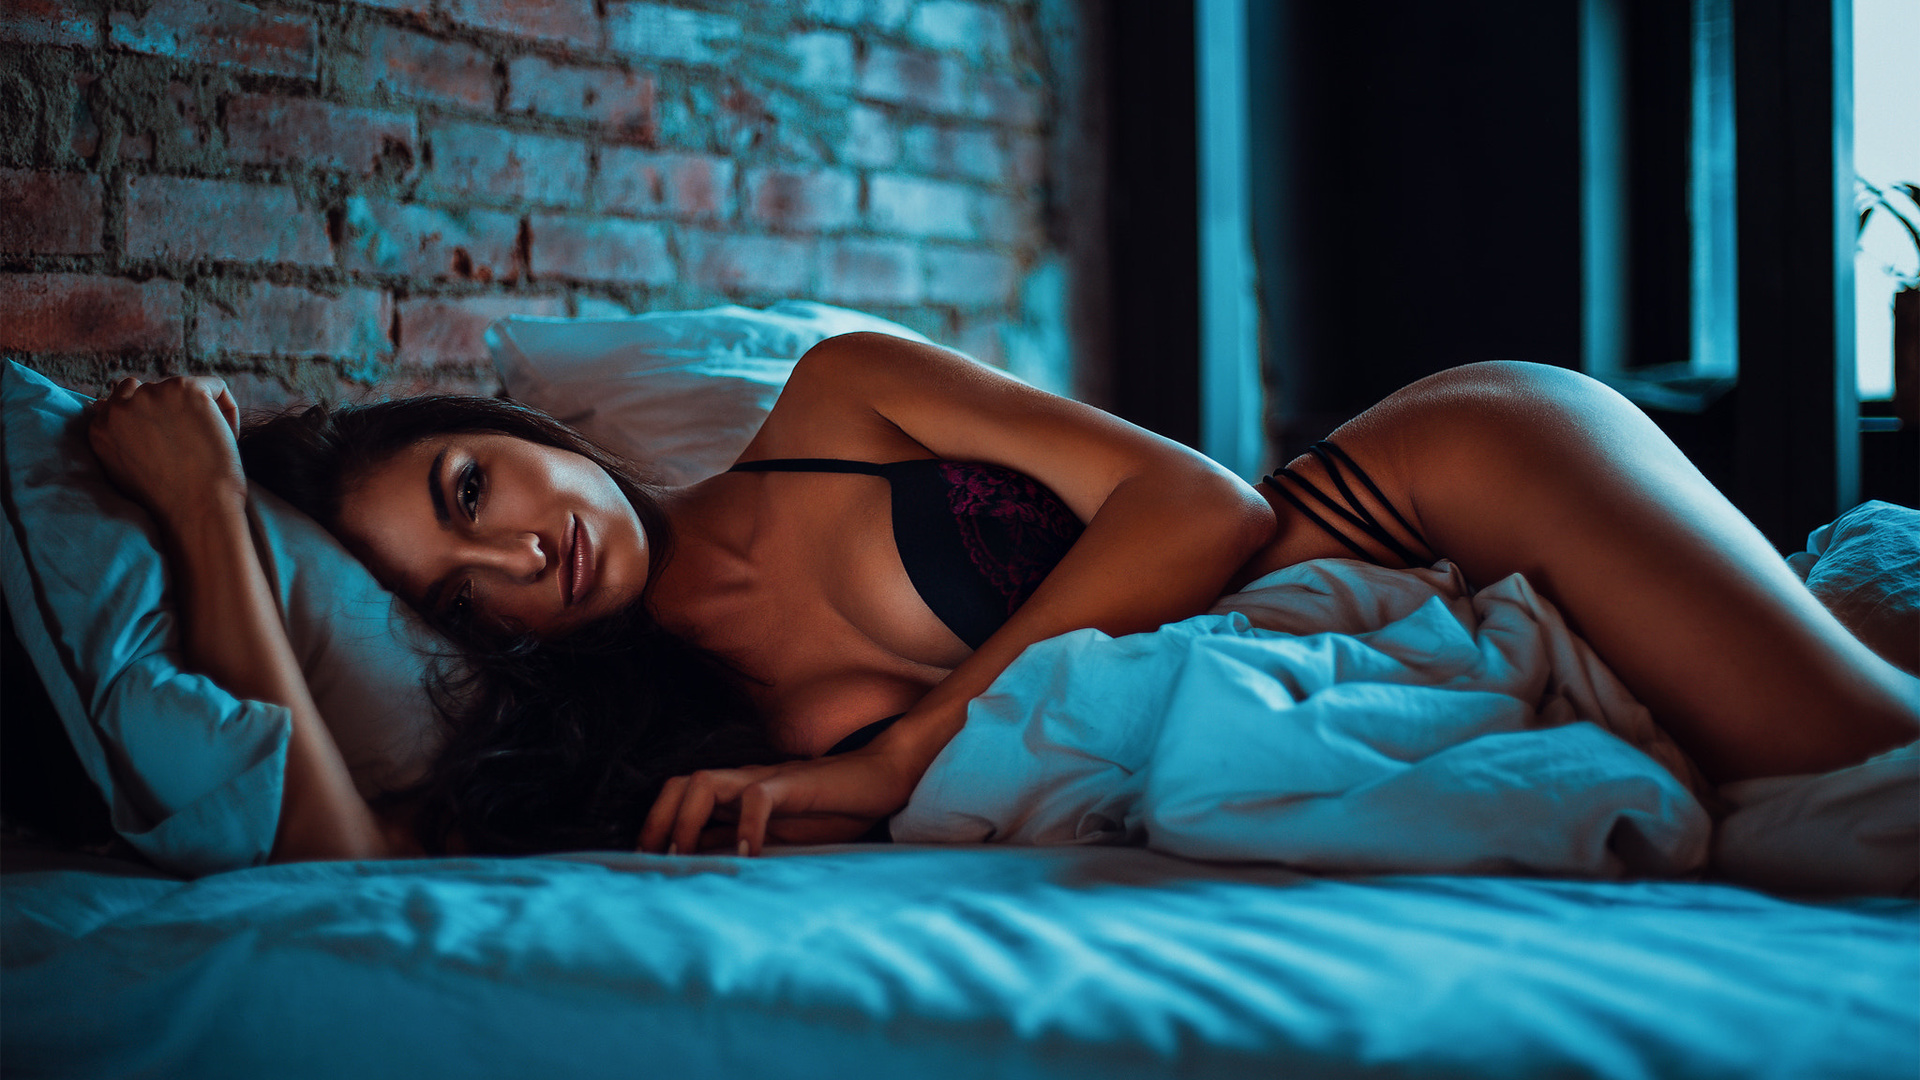 Silky sexy deep house music direct from new york, bambola anal